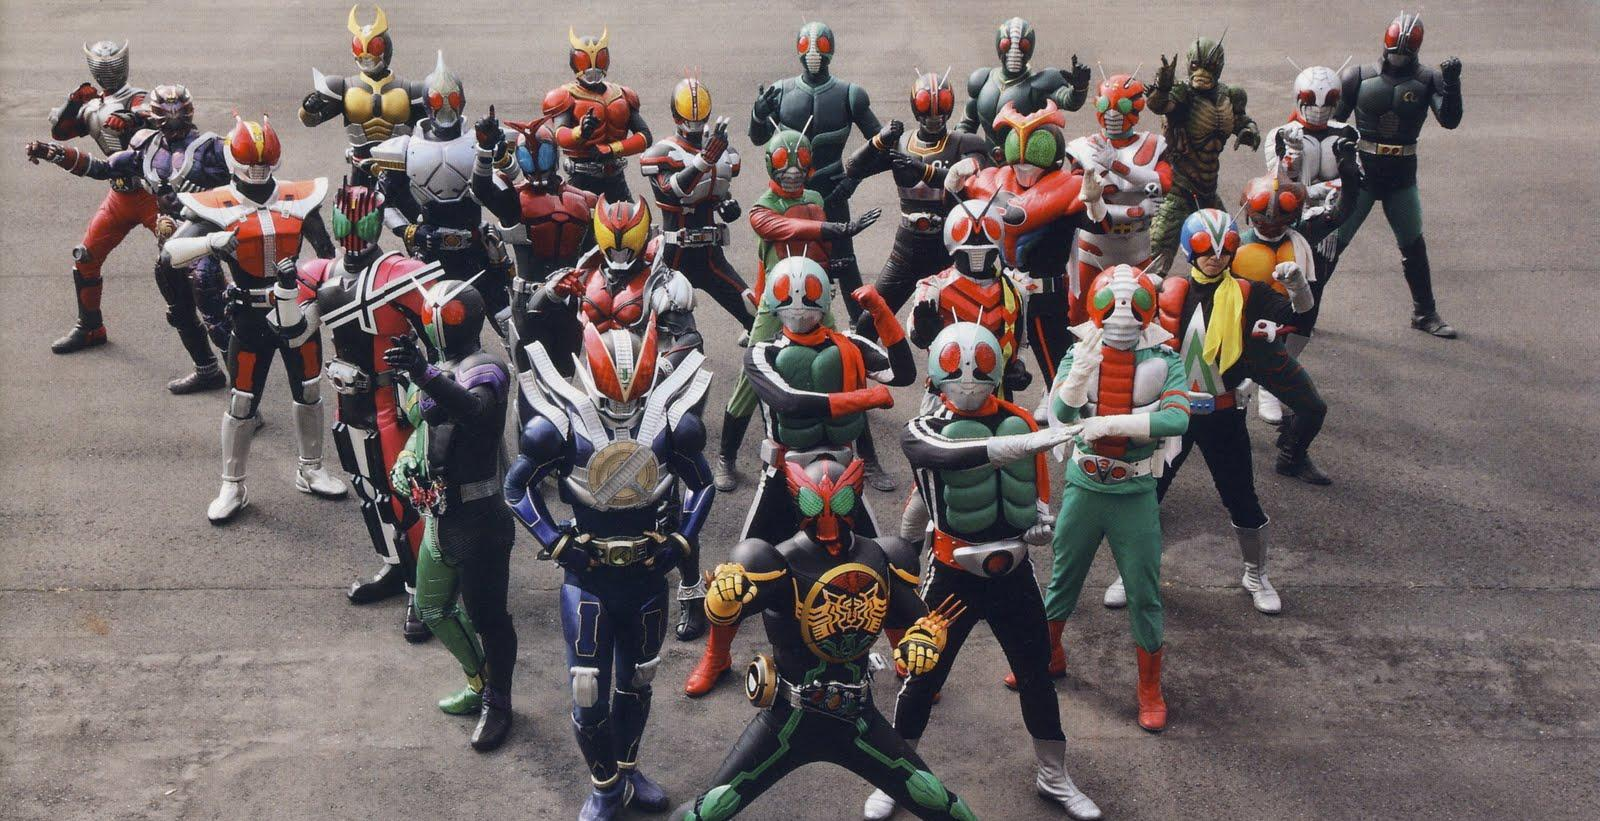 Xem phim Kamen Rider Decade: All Riders vs. Dai-Shocker - Kamen Rider Decade The Movie:all Rider Vs Daishocker Vietsub